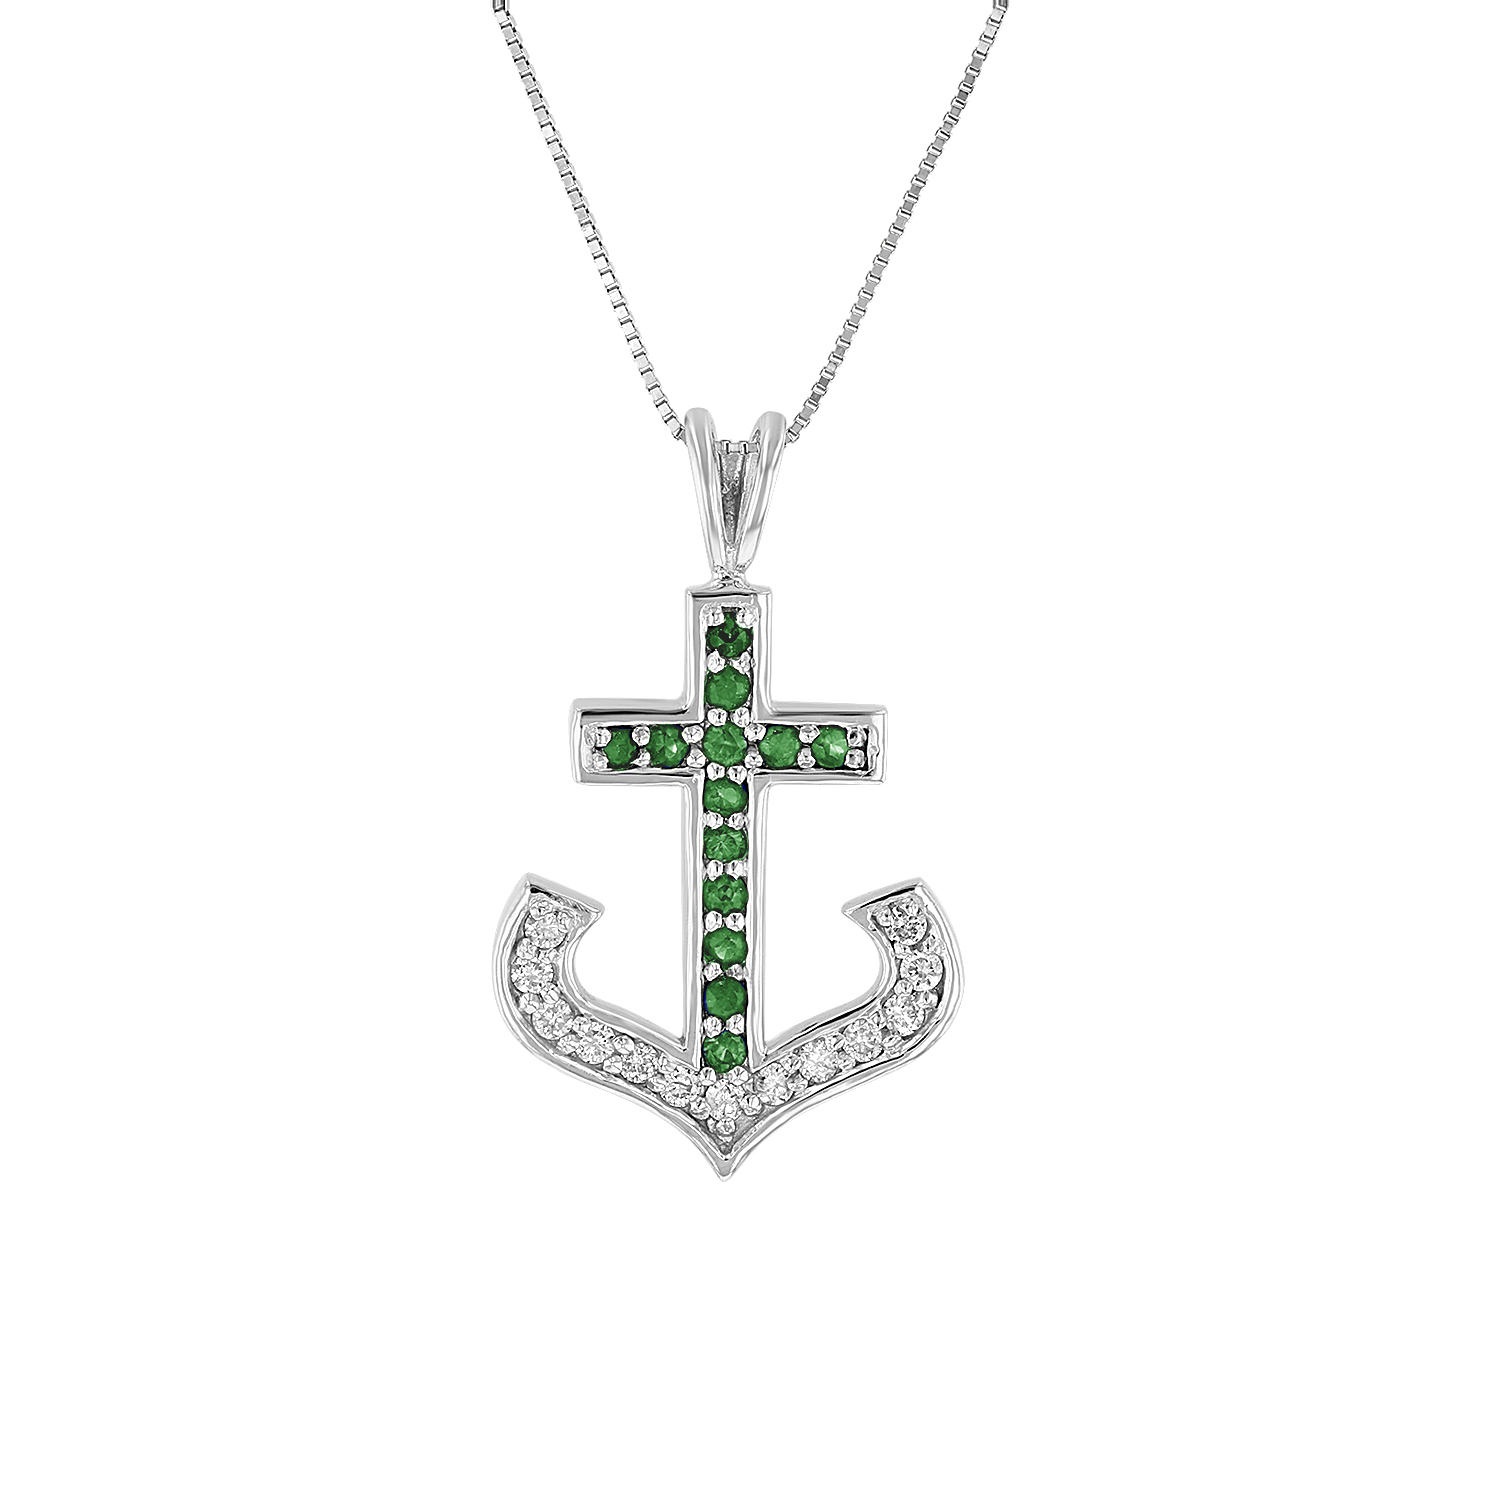 View 0.50ctw Diamond and Emerald Anchor Cross Pendant in 14k White Gold